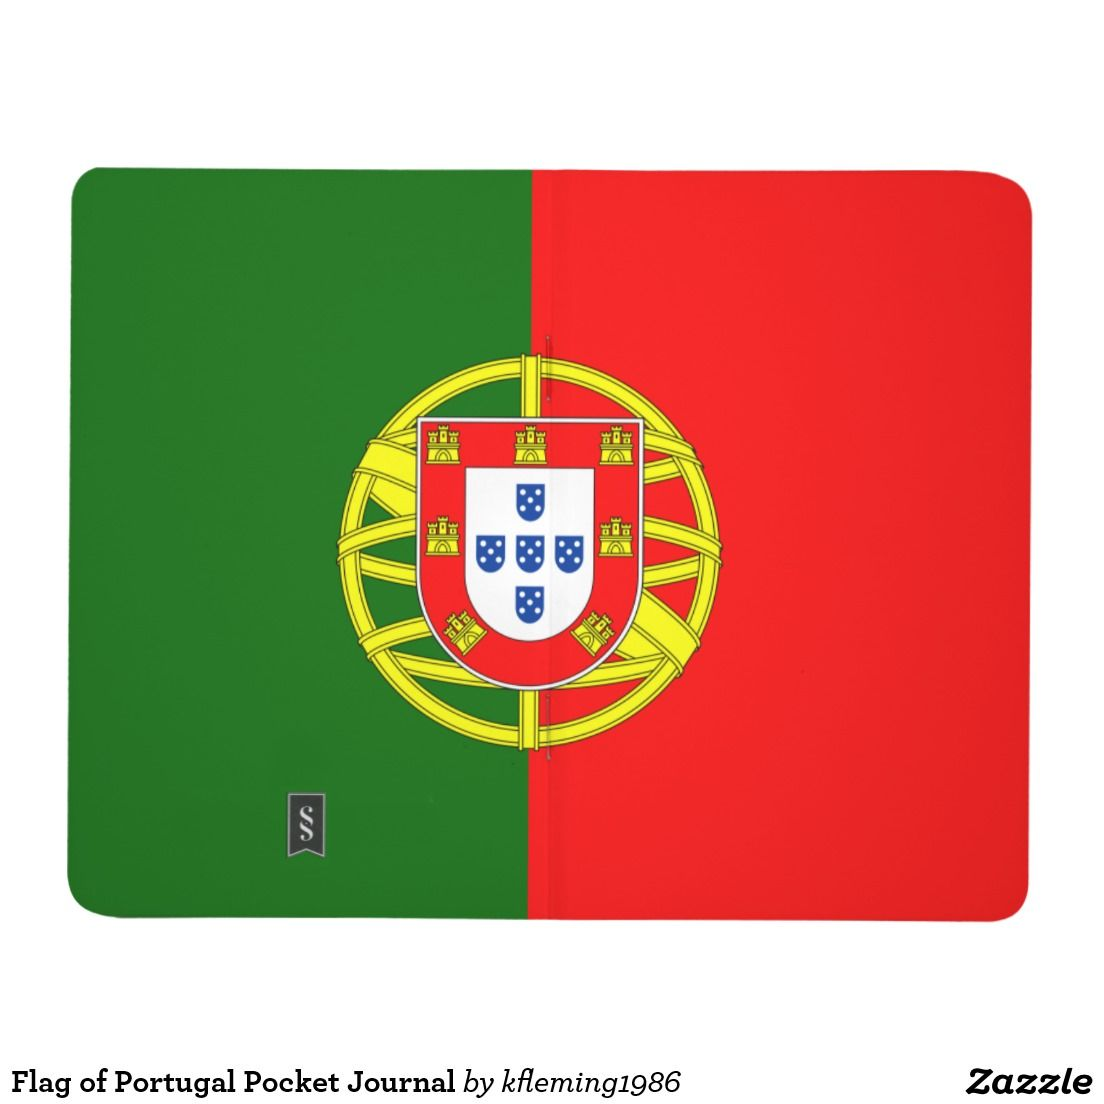 Flag of Portugal Pocket Journal | Portugal flag, Portuguese flag, Flag